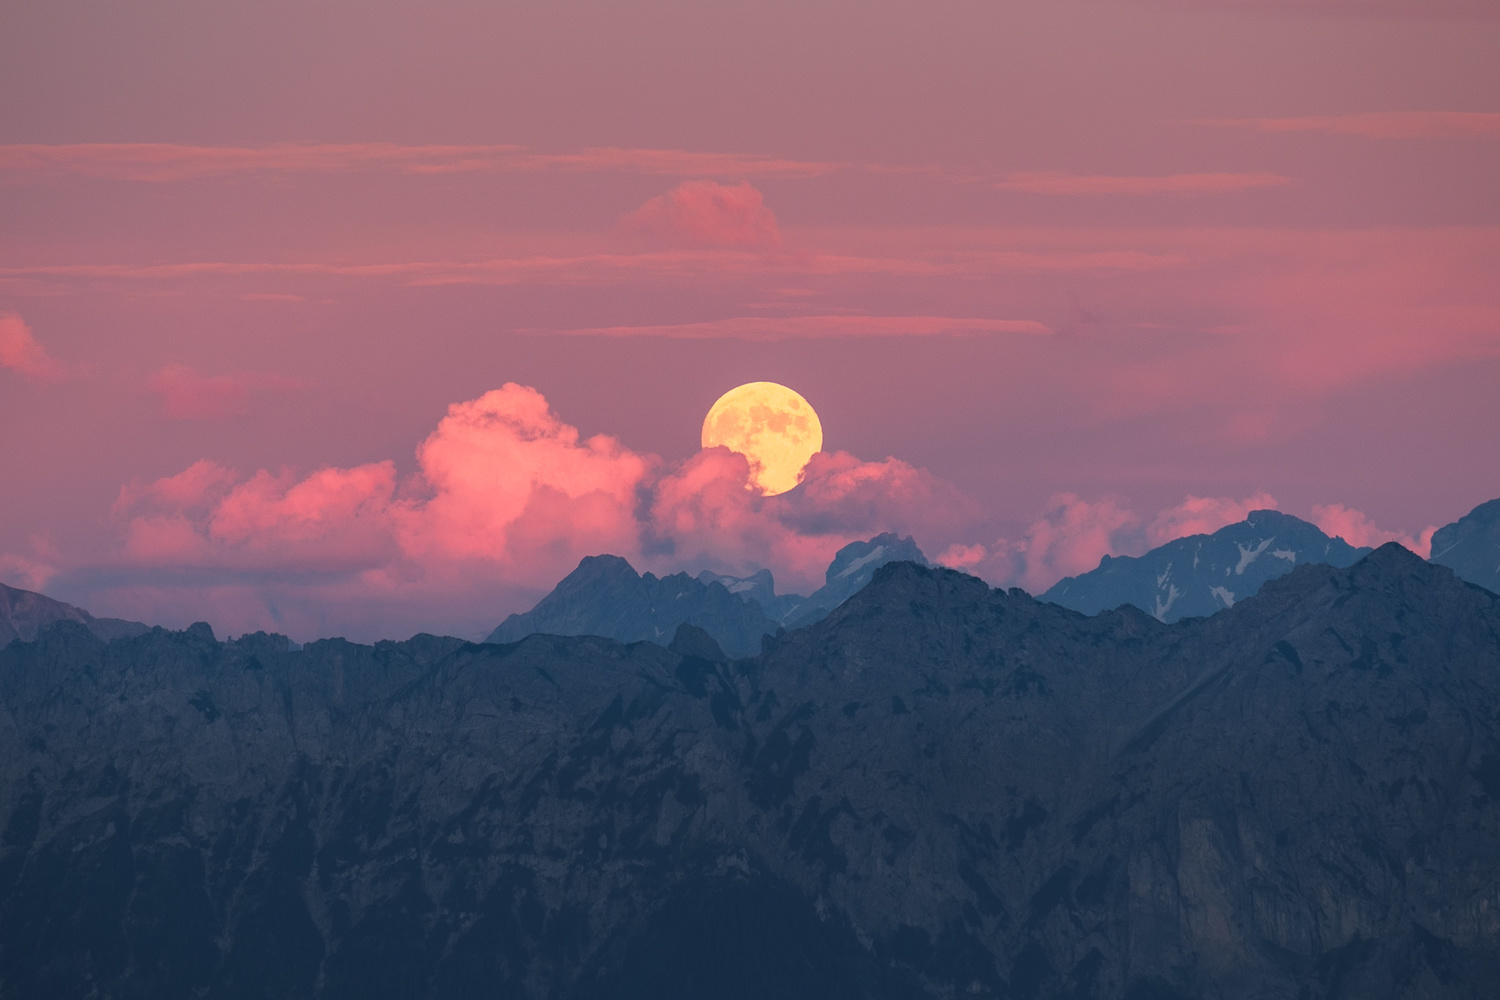 Moonrise in the Appenzell Alps by Anton Galitch